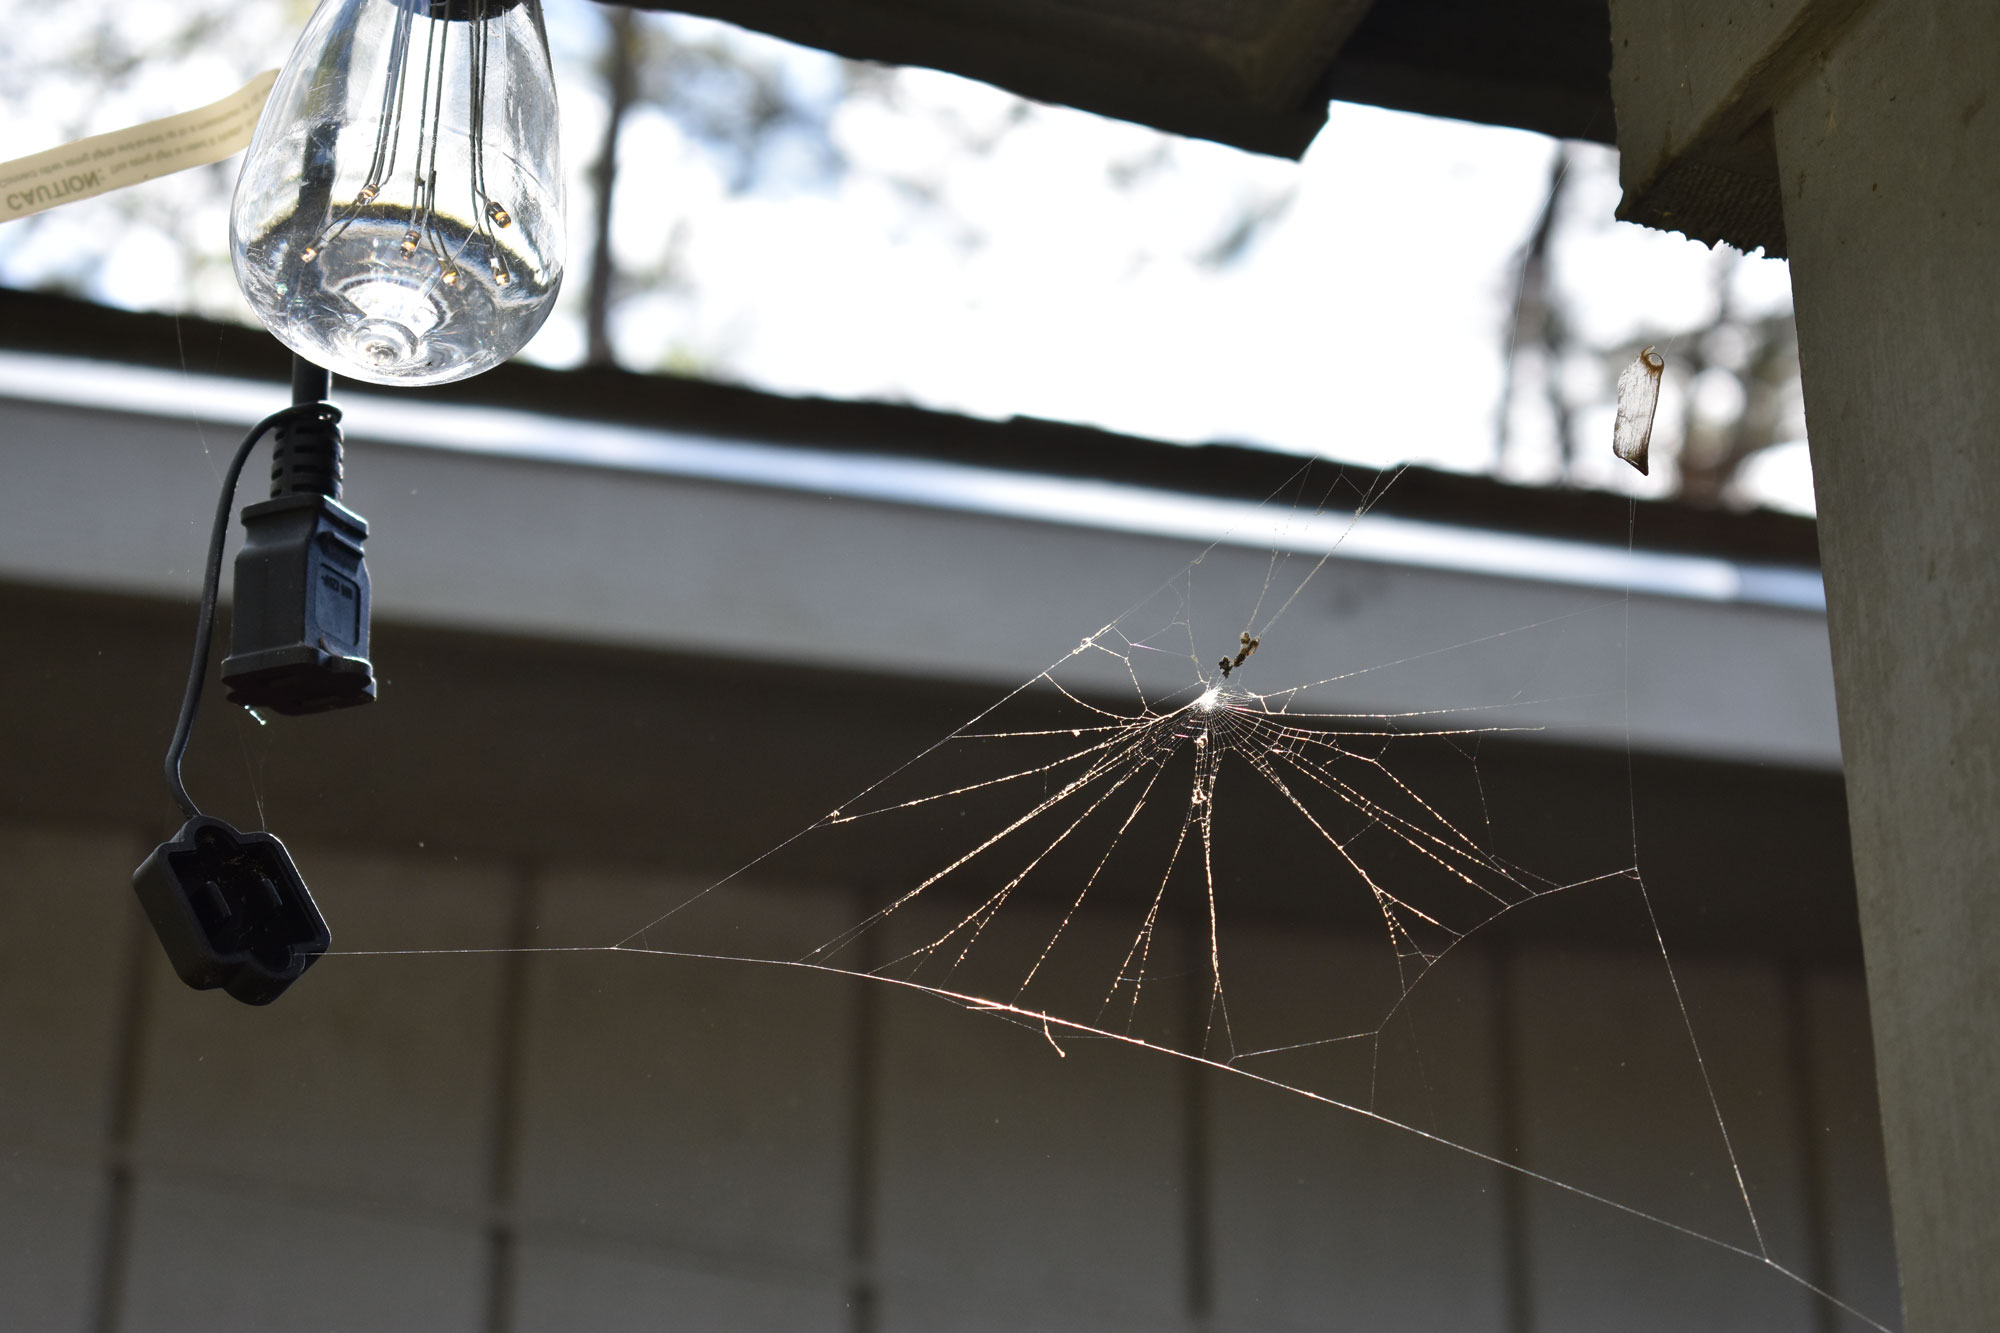 A spider web connects to a glass porch light.